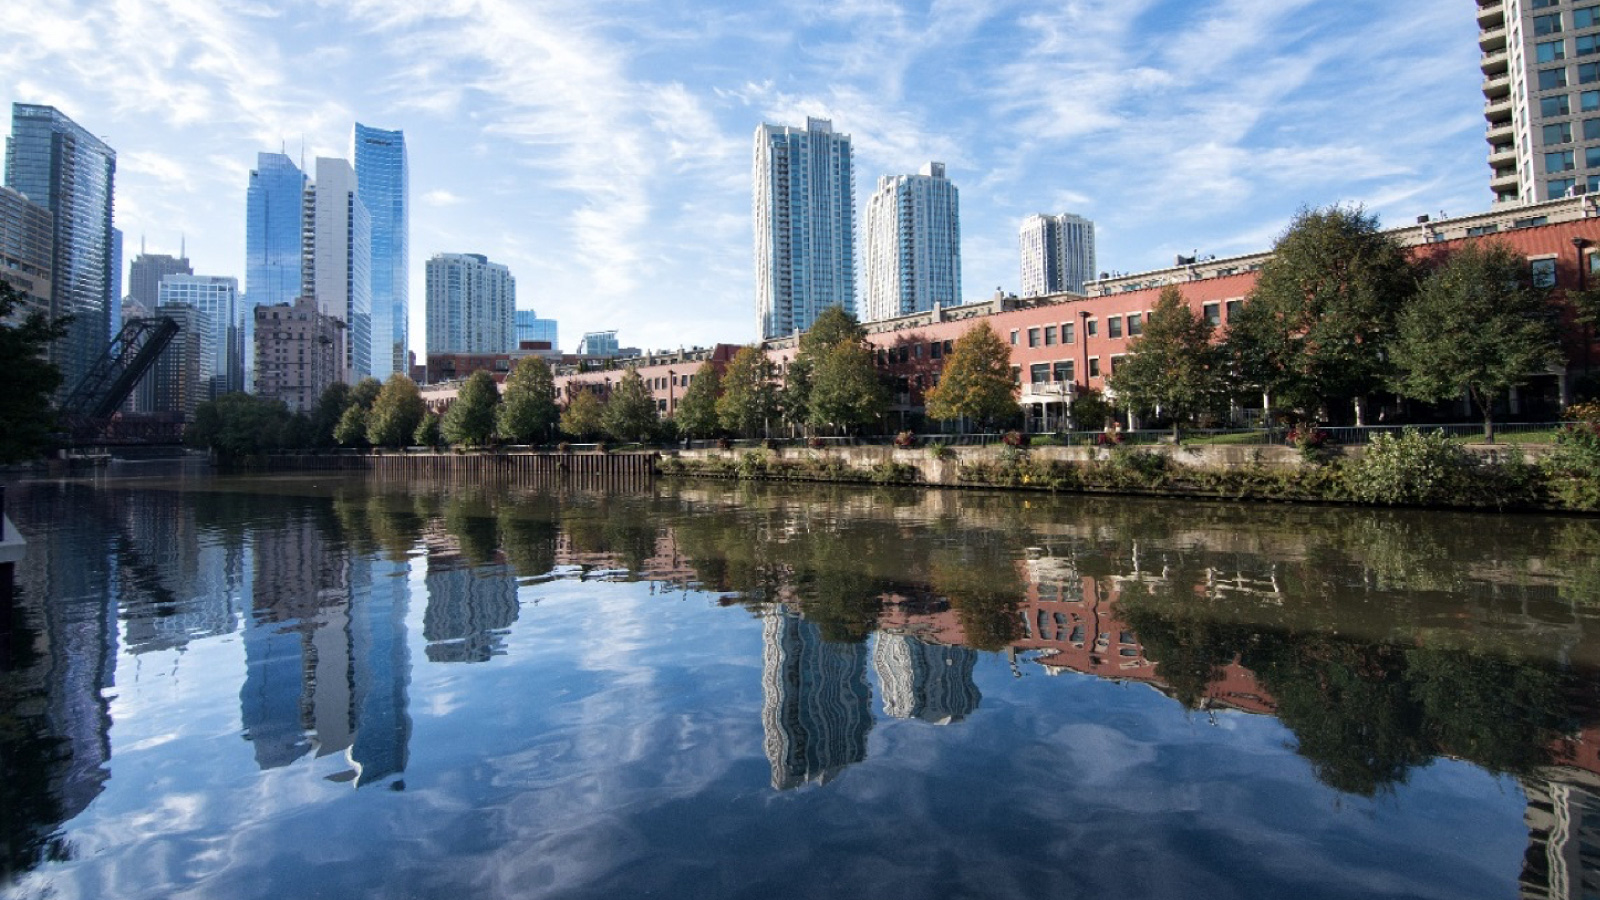 The Chicago River and connecting waterways are driving a resurgence in recreational activity and economic development. Now a new study takes a deeper dive below the surface to assess the positive impacts MWRD water quality enhancements are making.